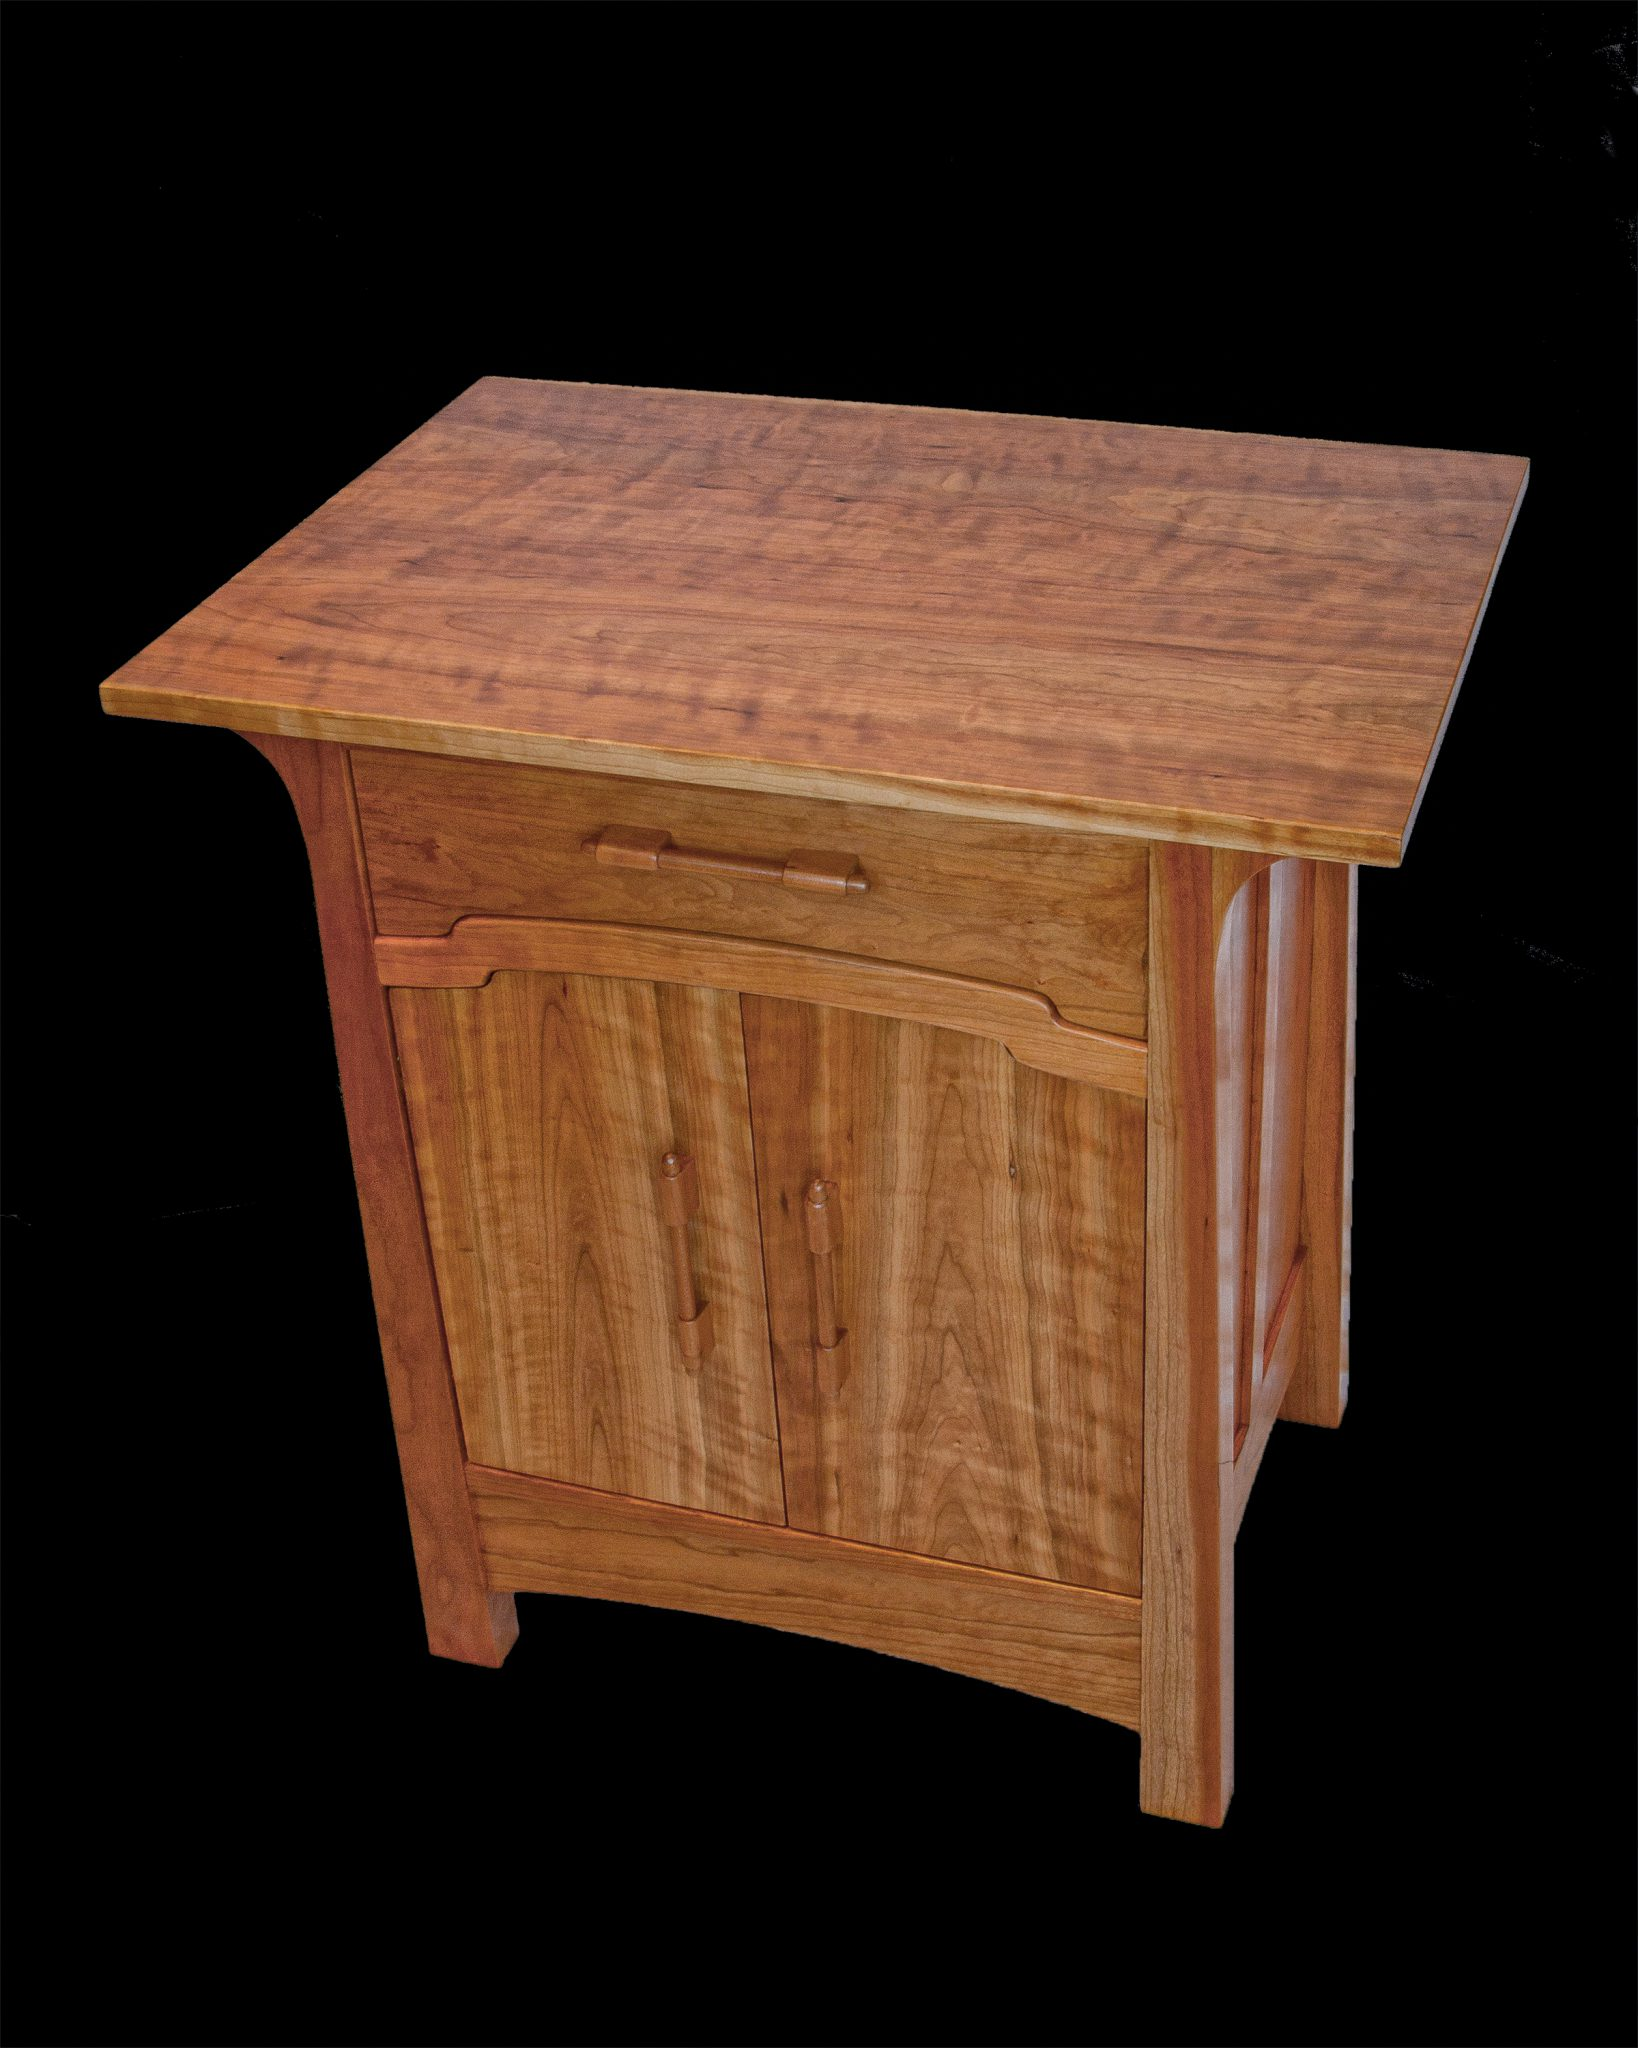 Arts and Crafts style cabinet in native cherry designed and built by Dick Glover, Emmett Eldred, Sam Everitt and Steel King. Donated to Safe Shelter for auction